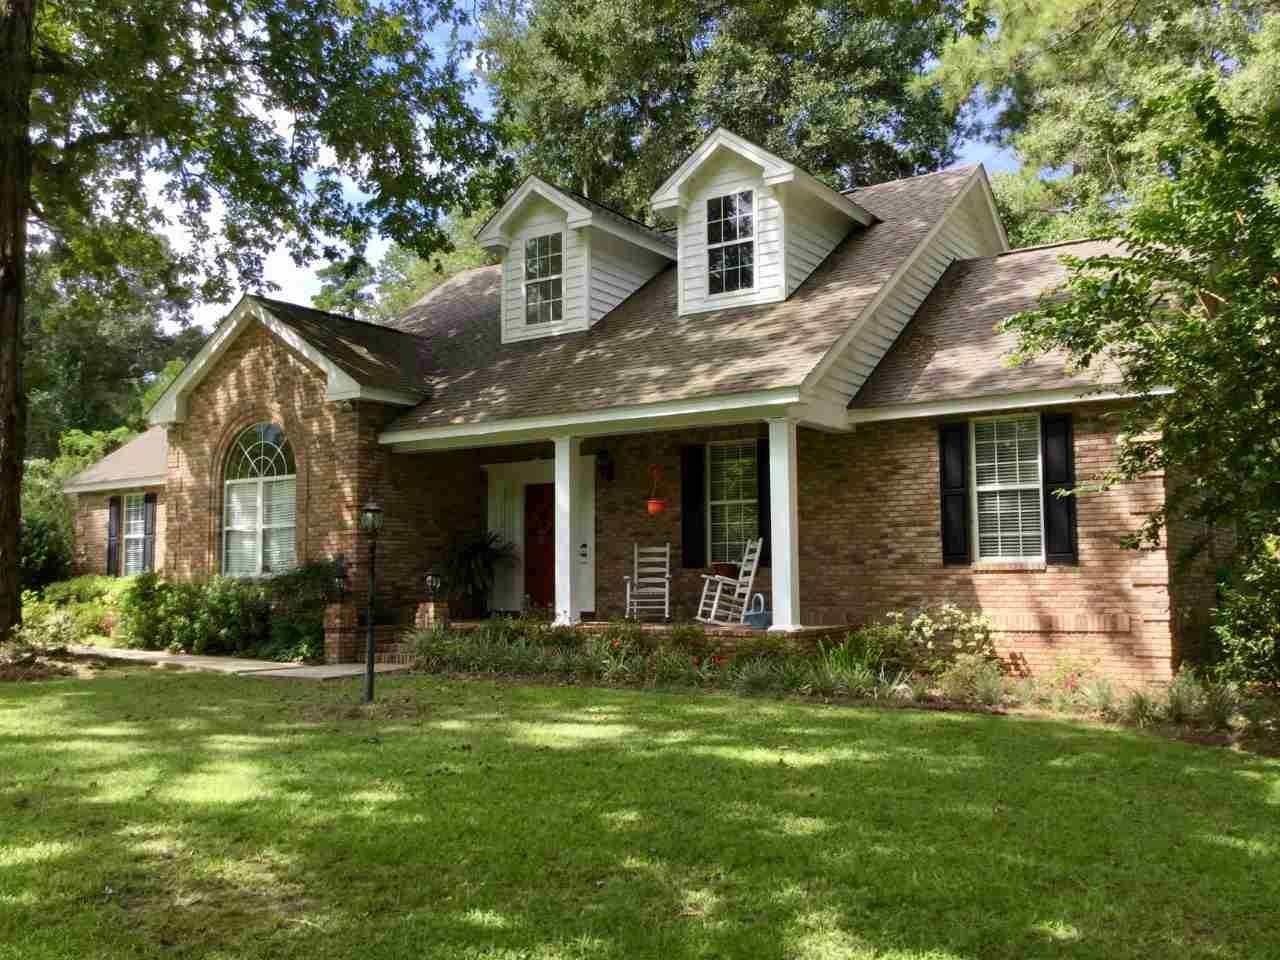 1559 Spring Hollow Drive, Monticello, FL 32344 - MLS#: 322488